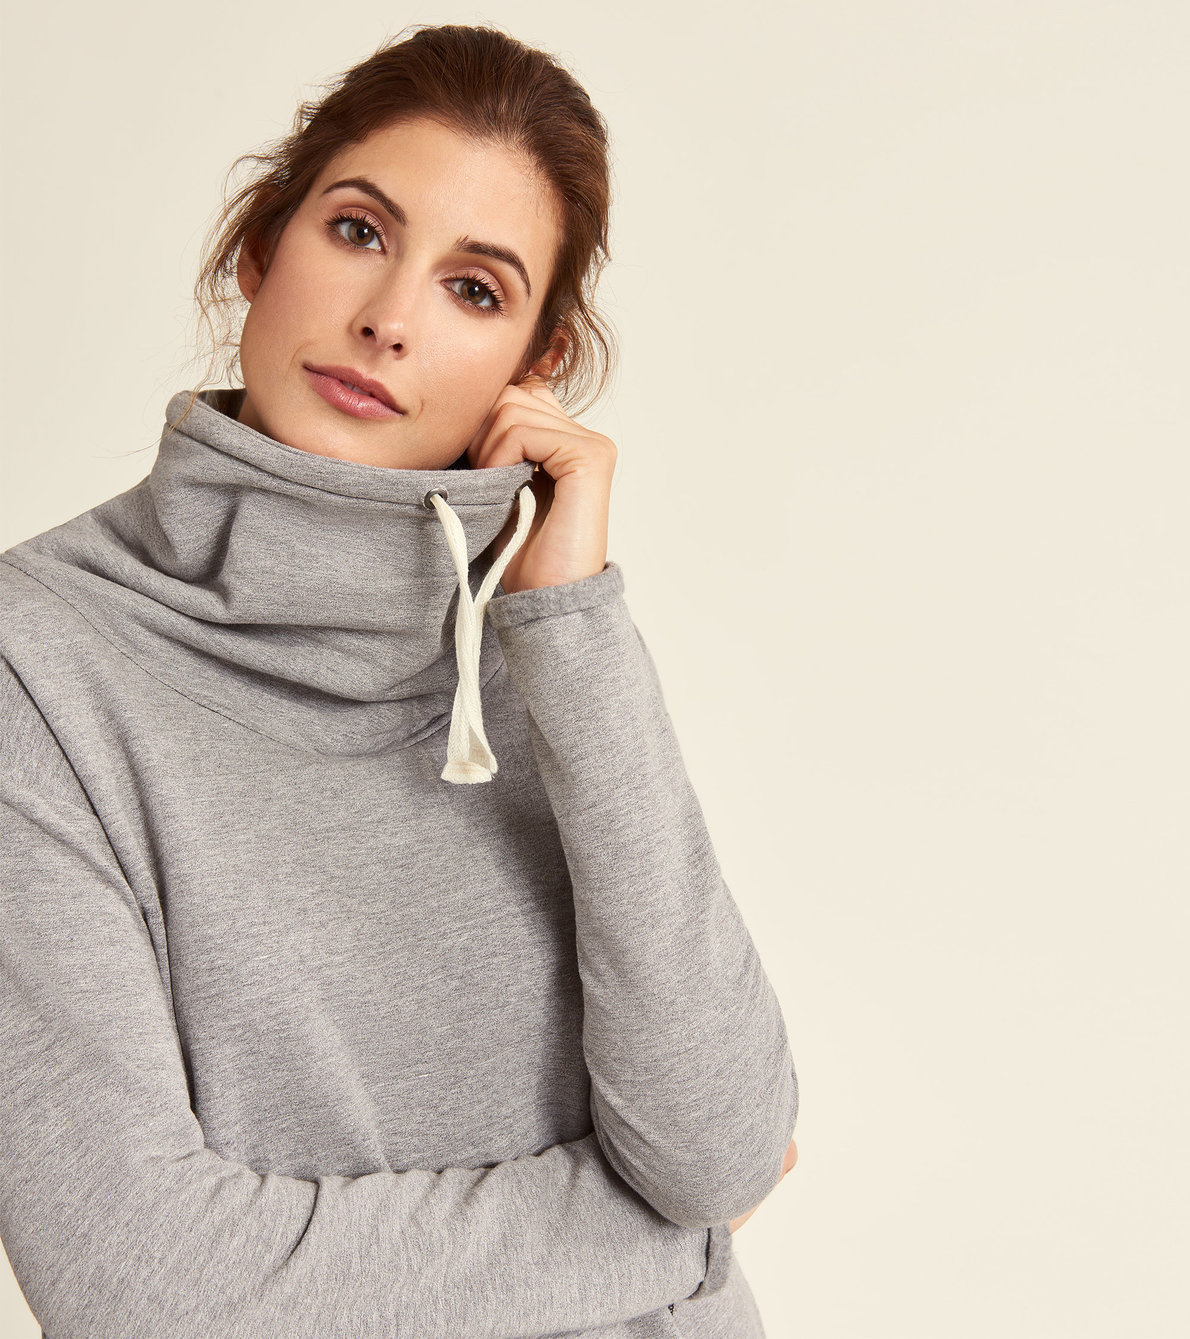 View larger image of Funnel Neck Tunic - Salt and Pepper Charcoal